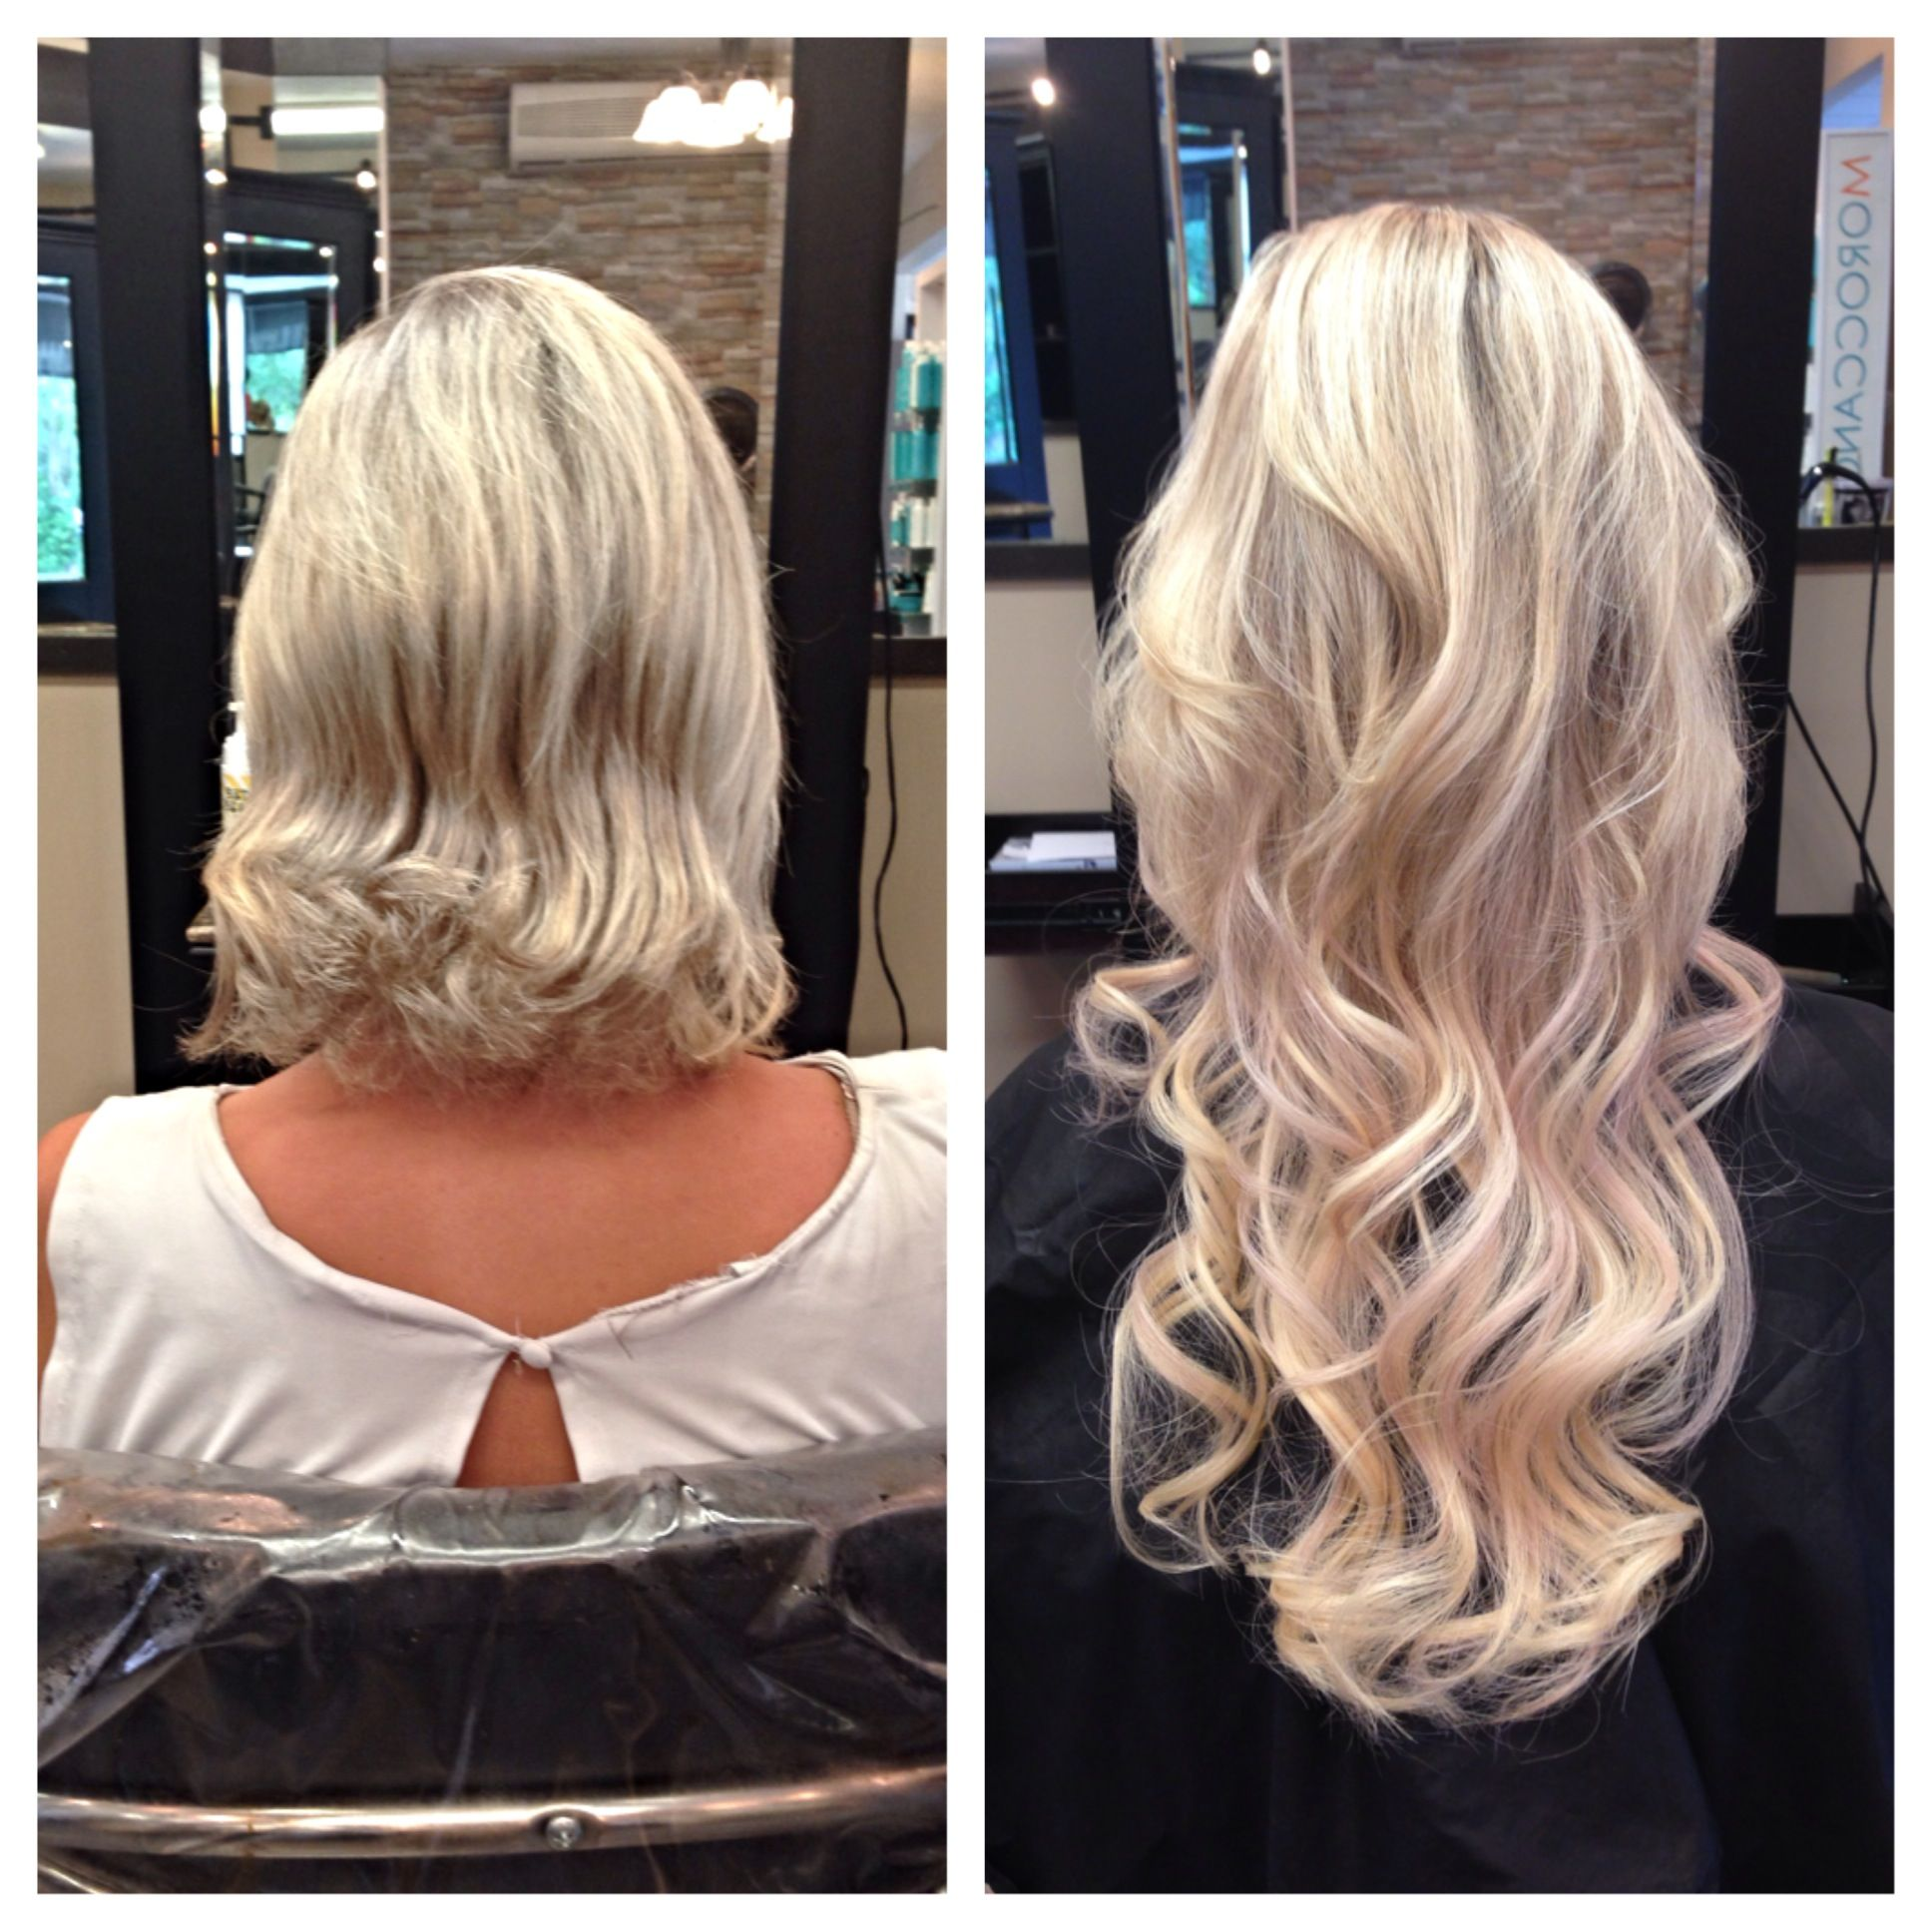 AMAZING TRANSFORMATION 18in Hair Extensions Styles By Sabrina